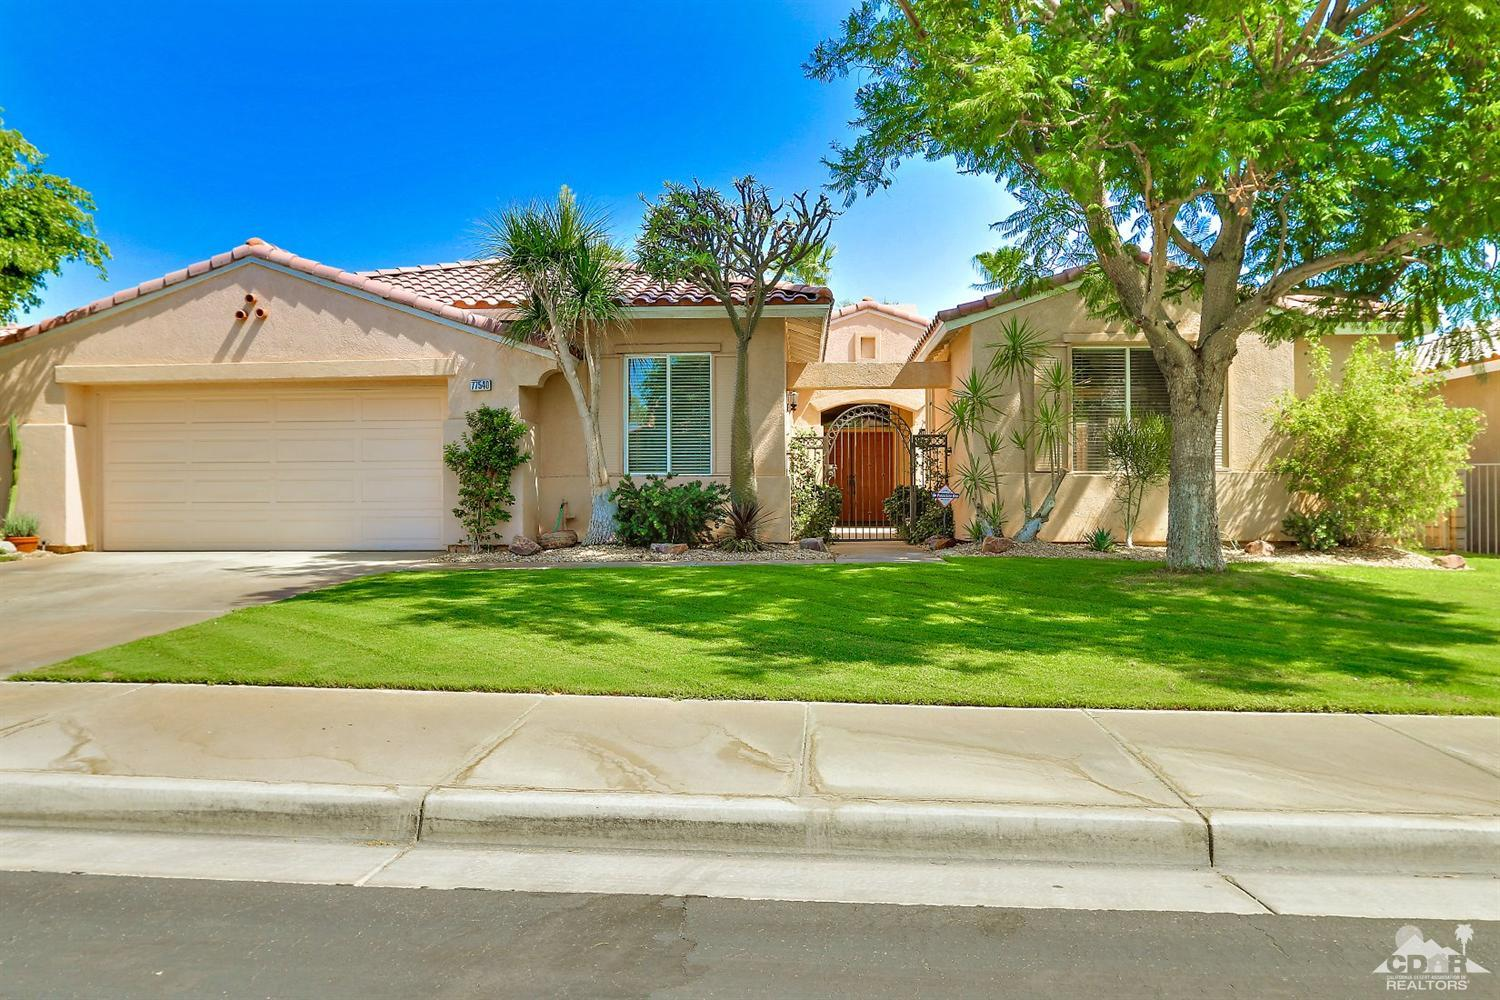 77540 Justin Ct, Palm Desert, CA 92211